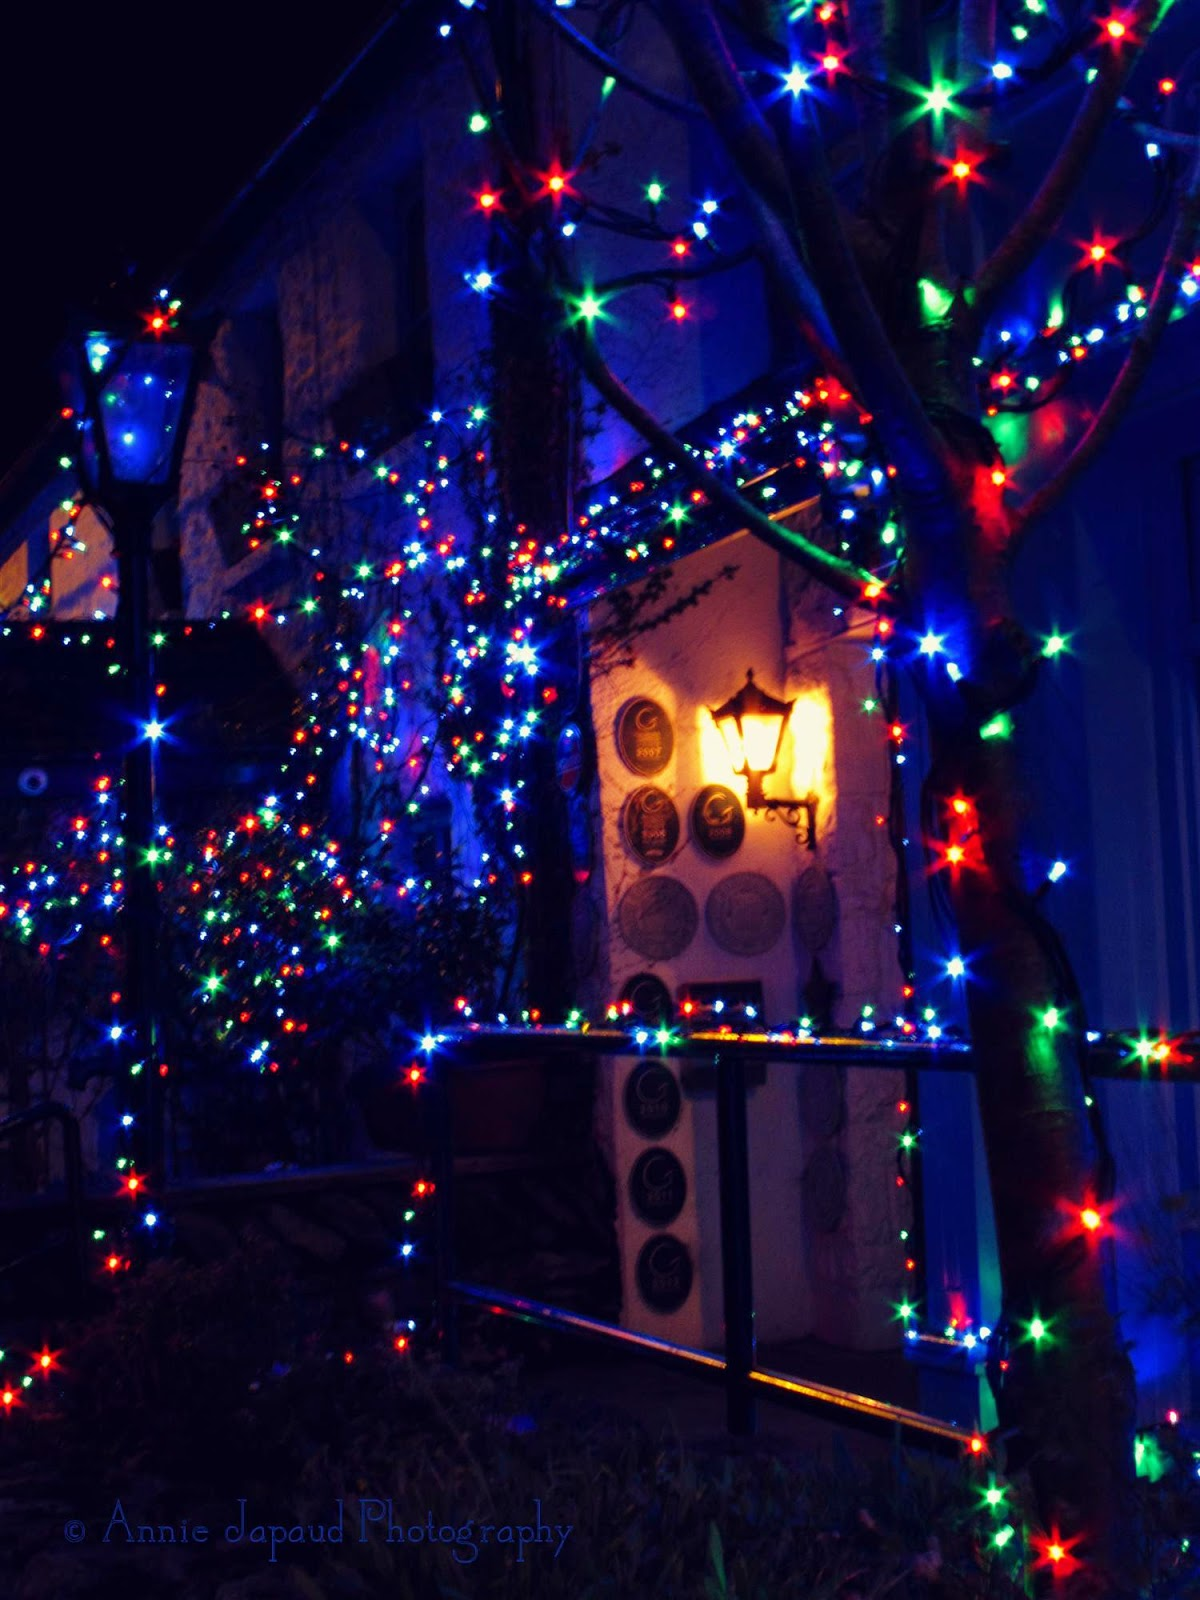 Christmas lights around a door frame